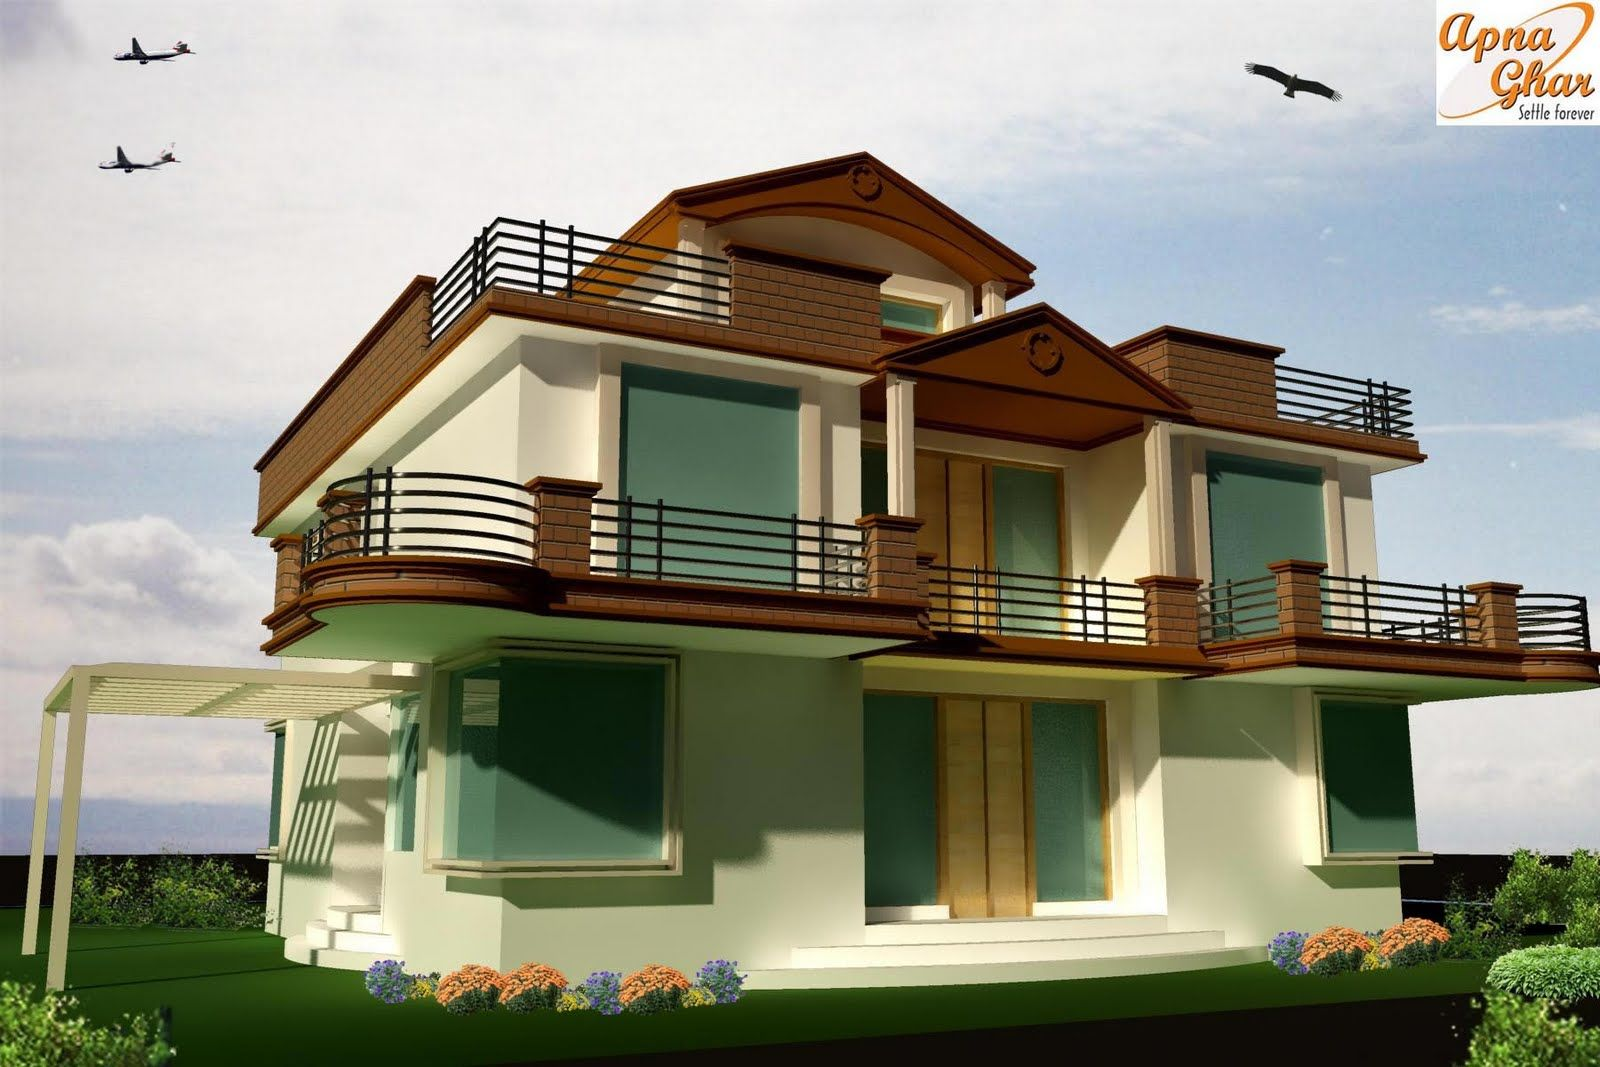 Architectural designs modern architectural house plans for Modern building architecture design